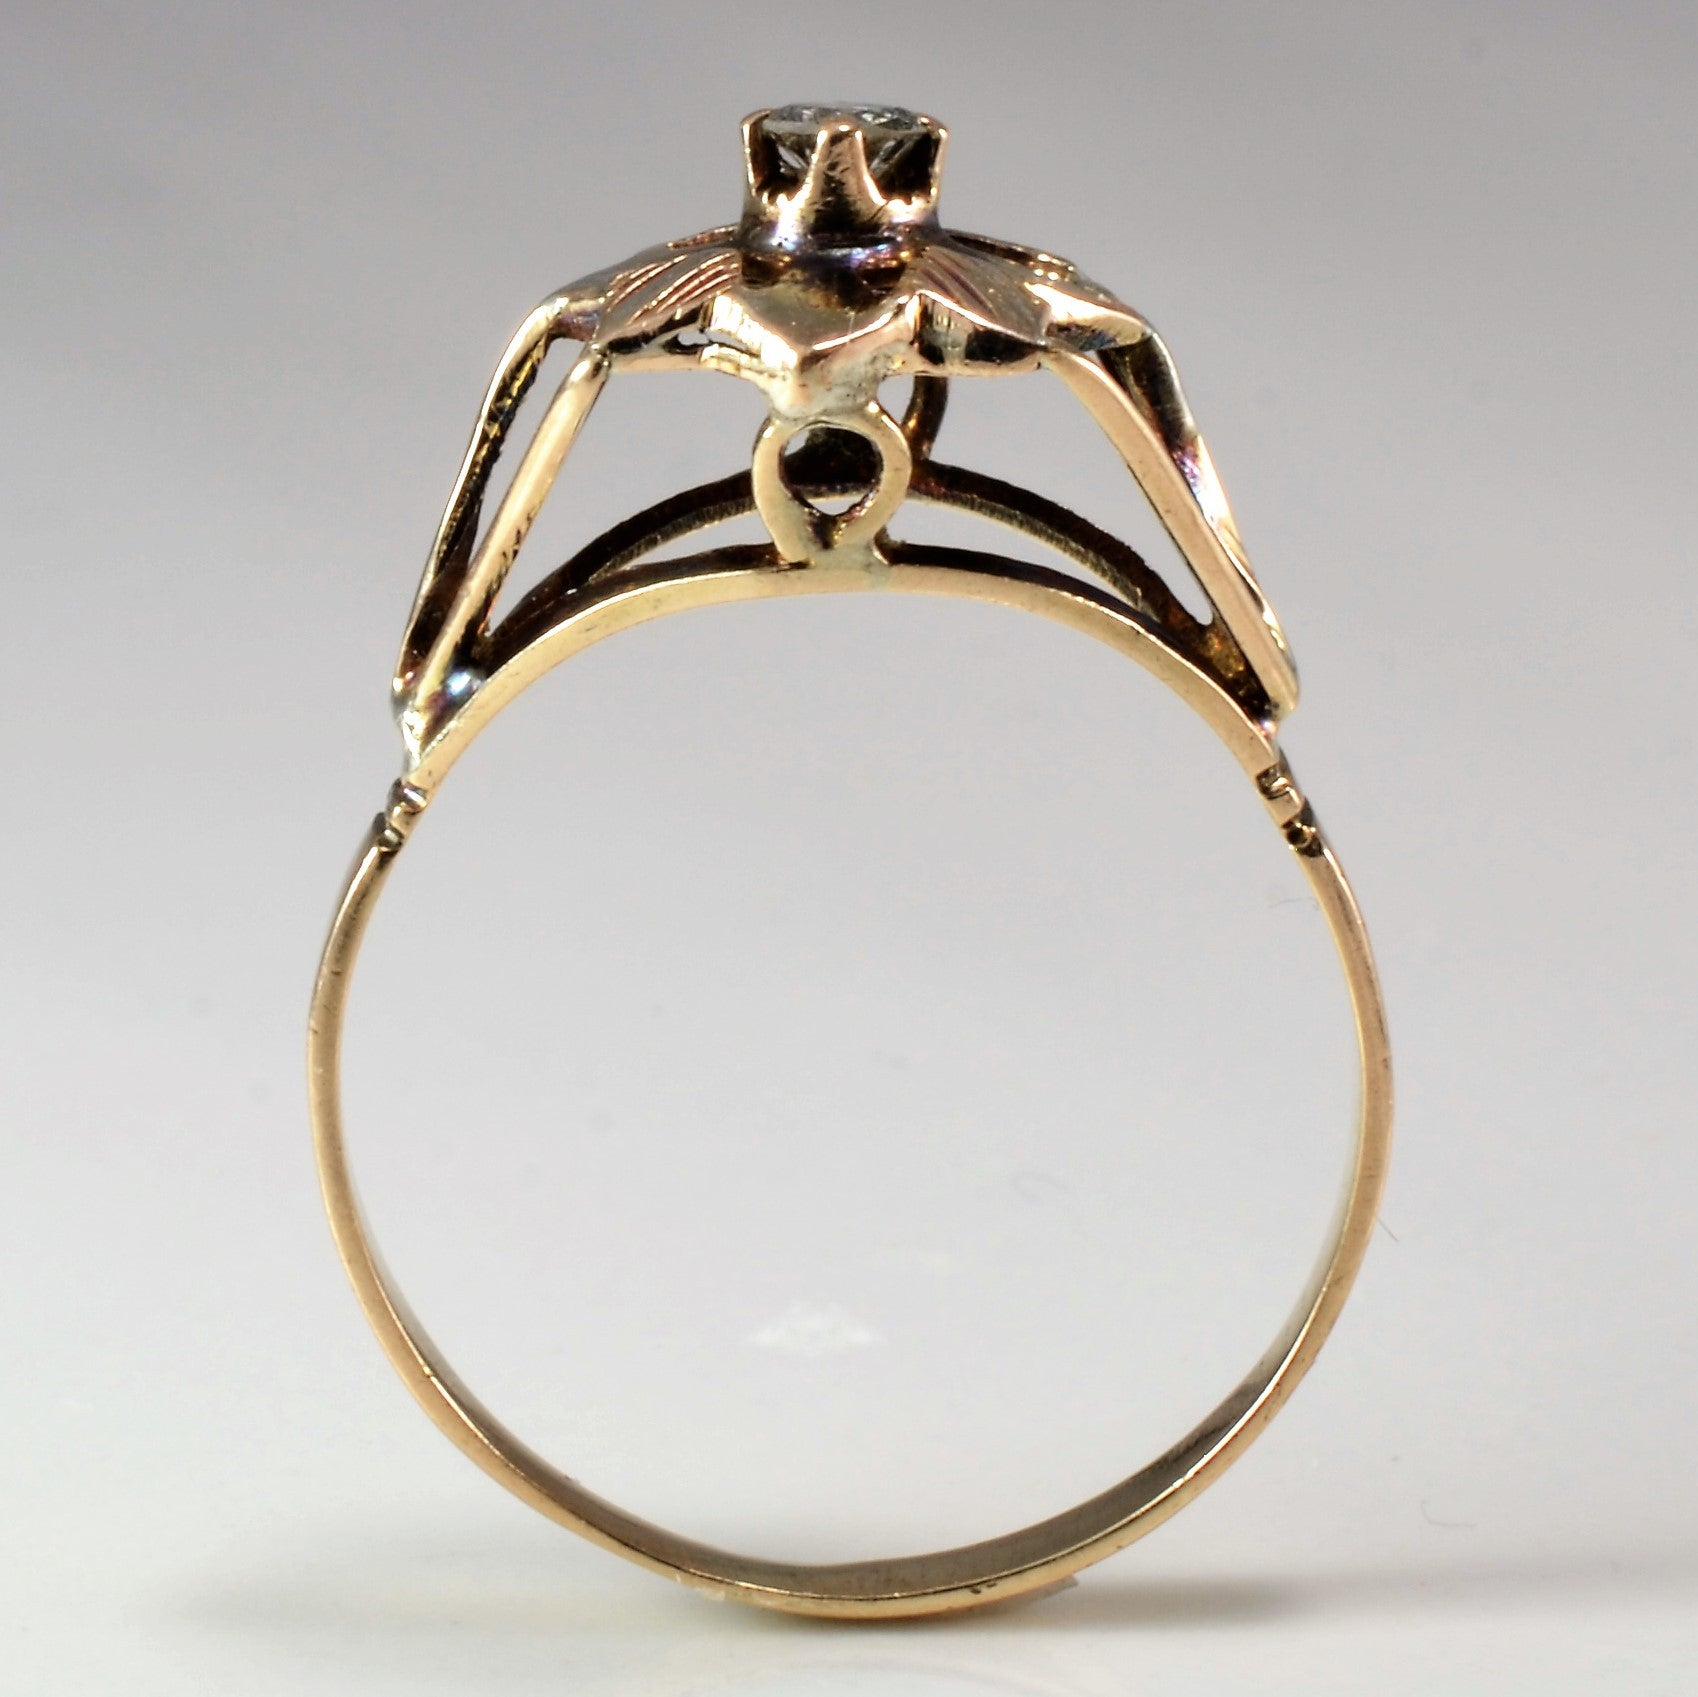 Vintage High Set Diamond Ring | 0.10 ct, SZ 8.75 |